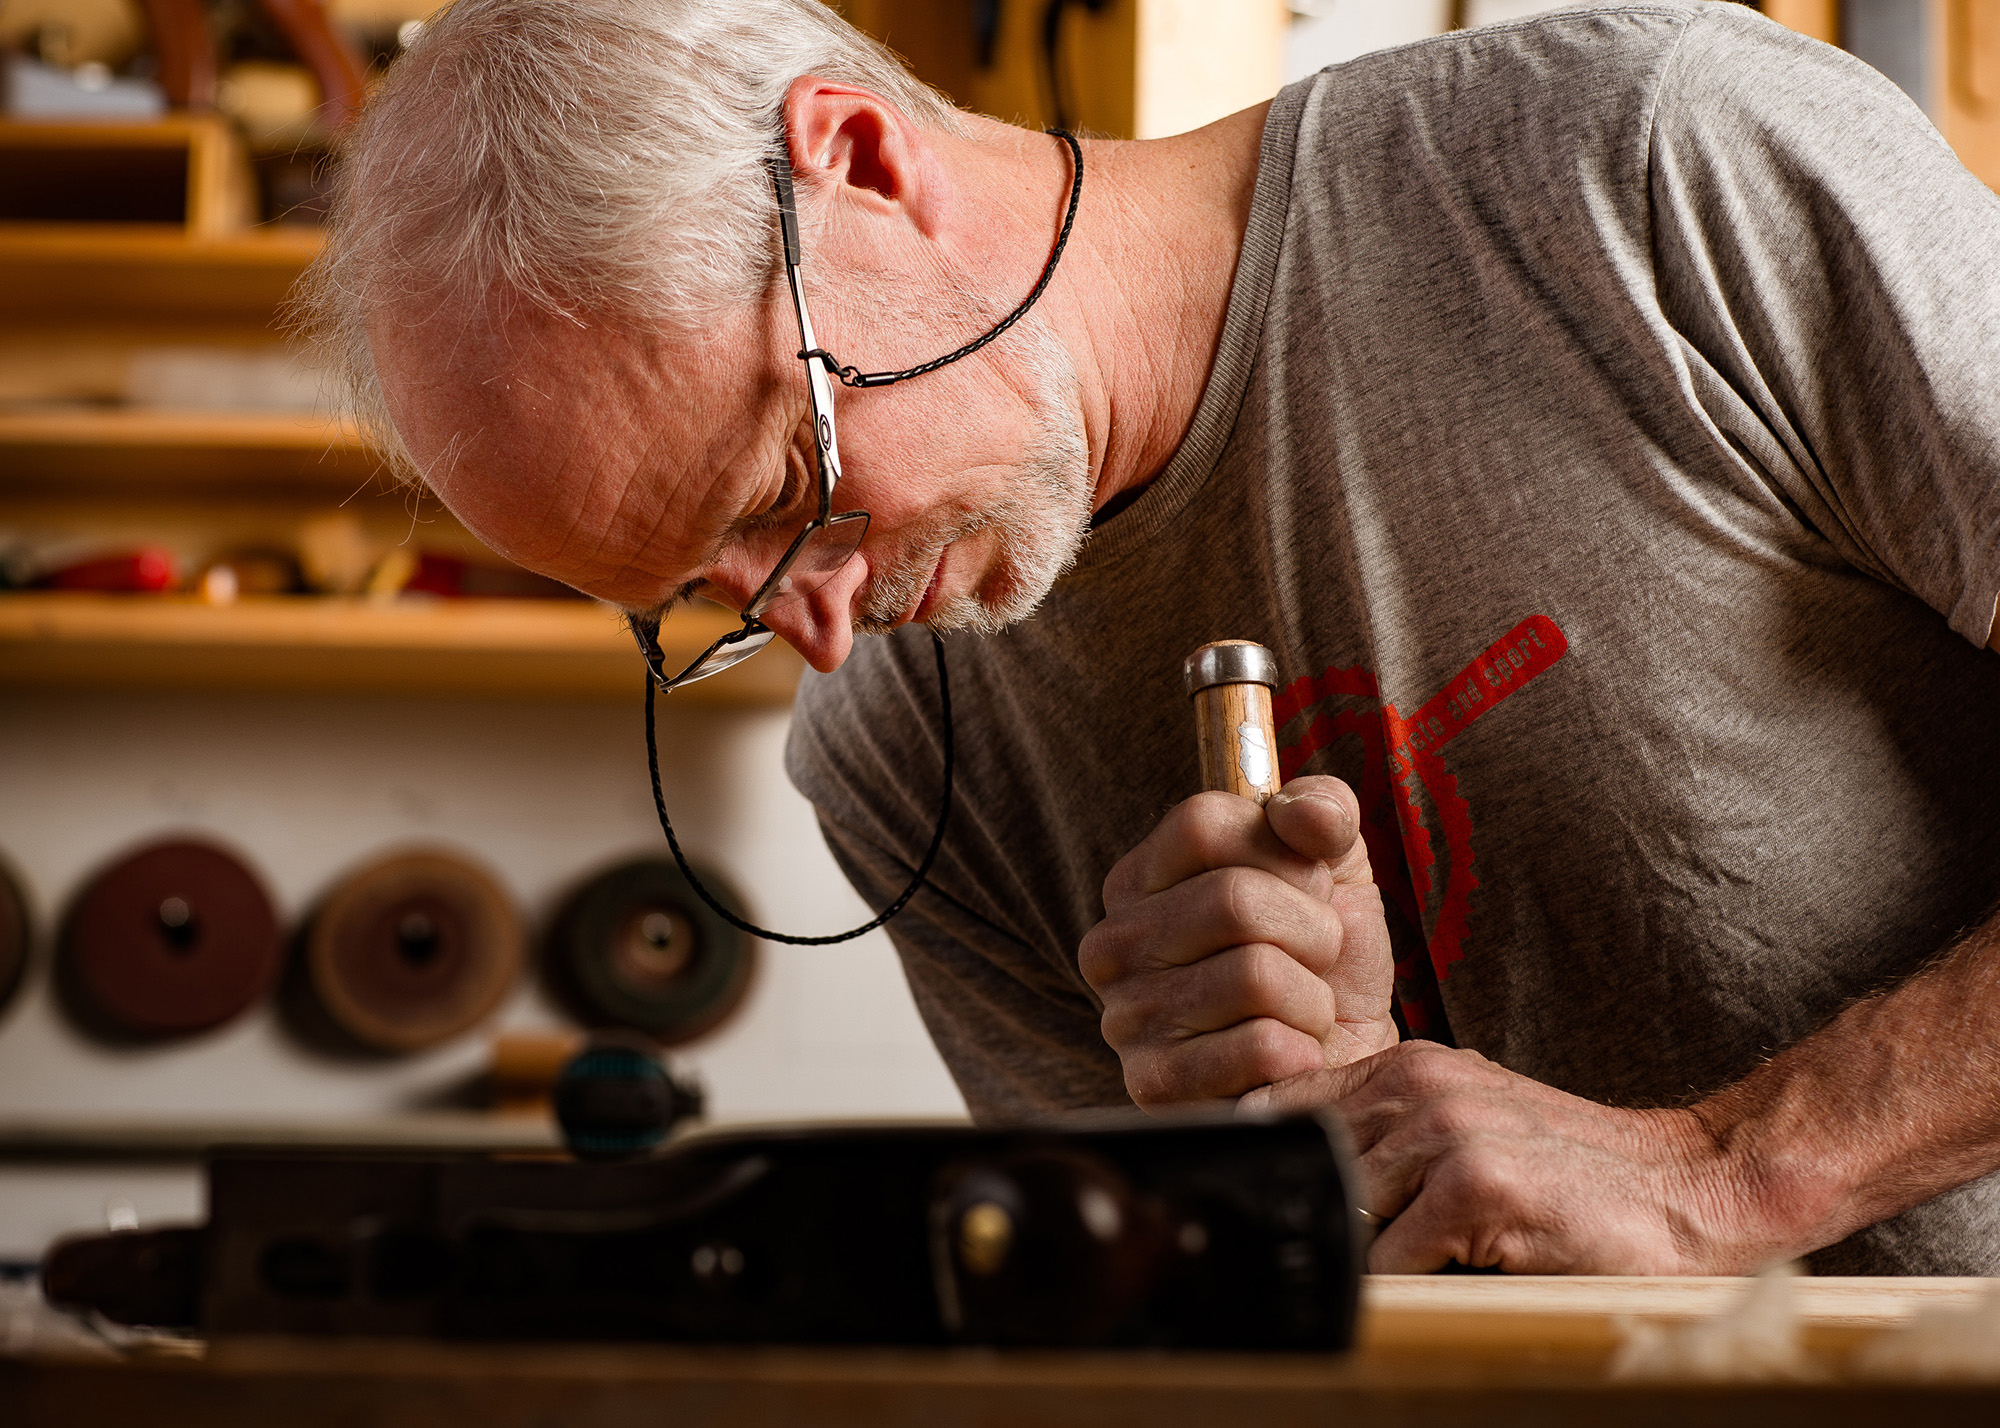 Photo story showcasing Stewart Wurtz, artisan woodworker from the Pacific Northwest.